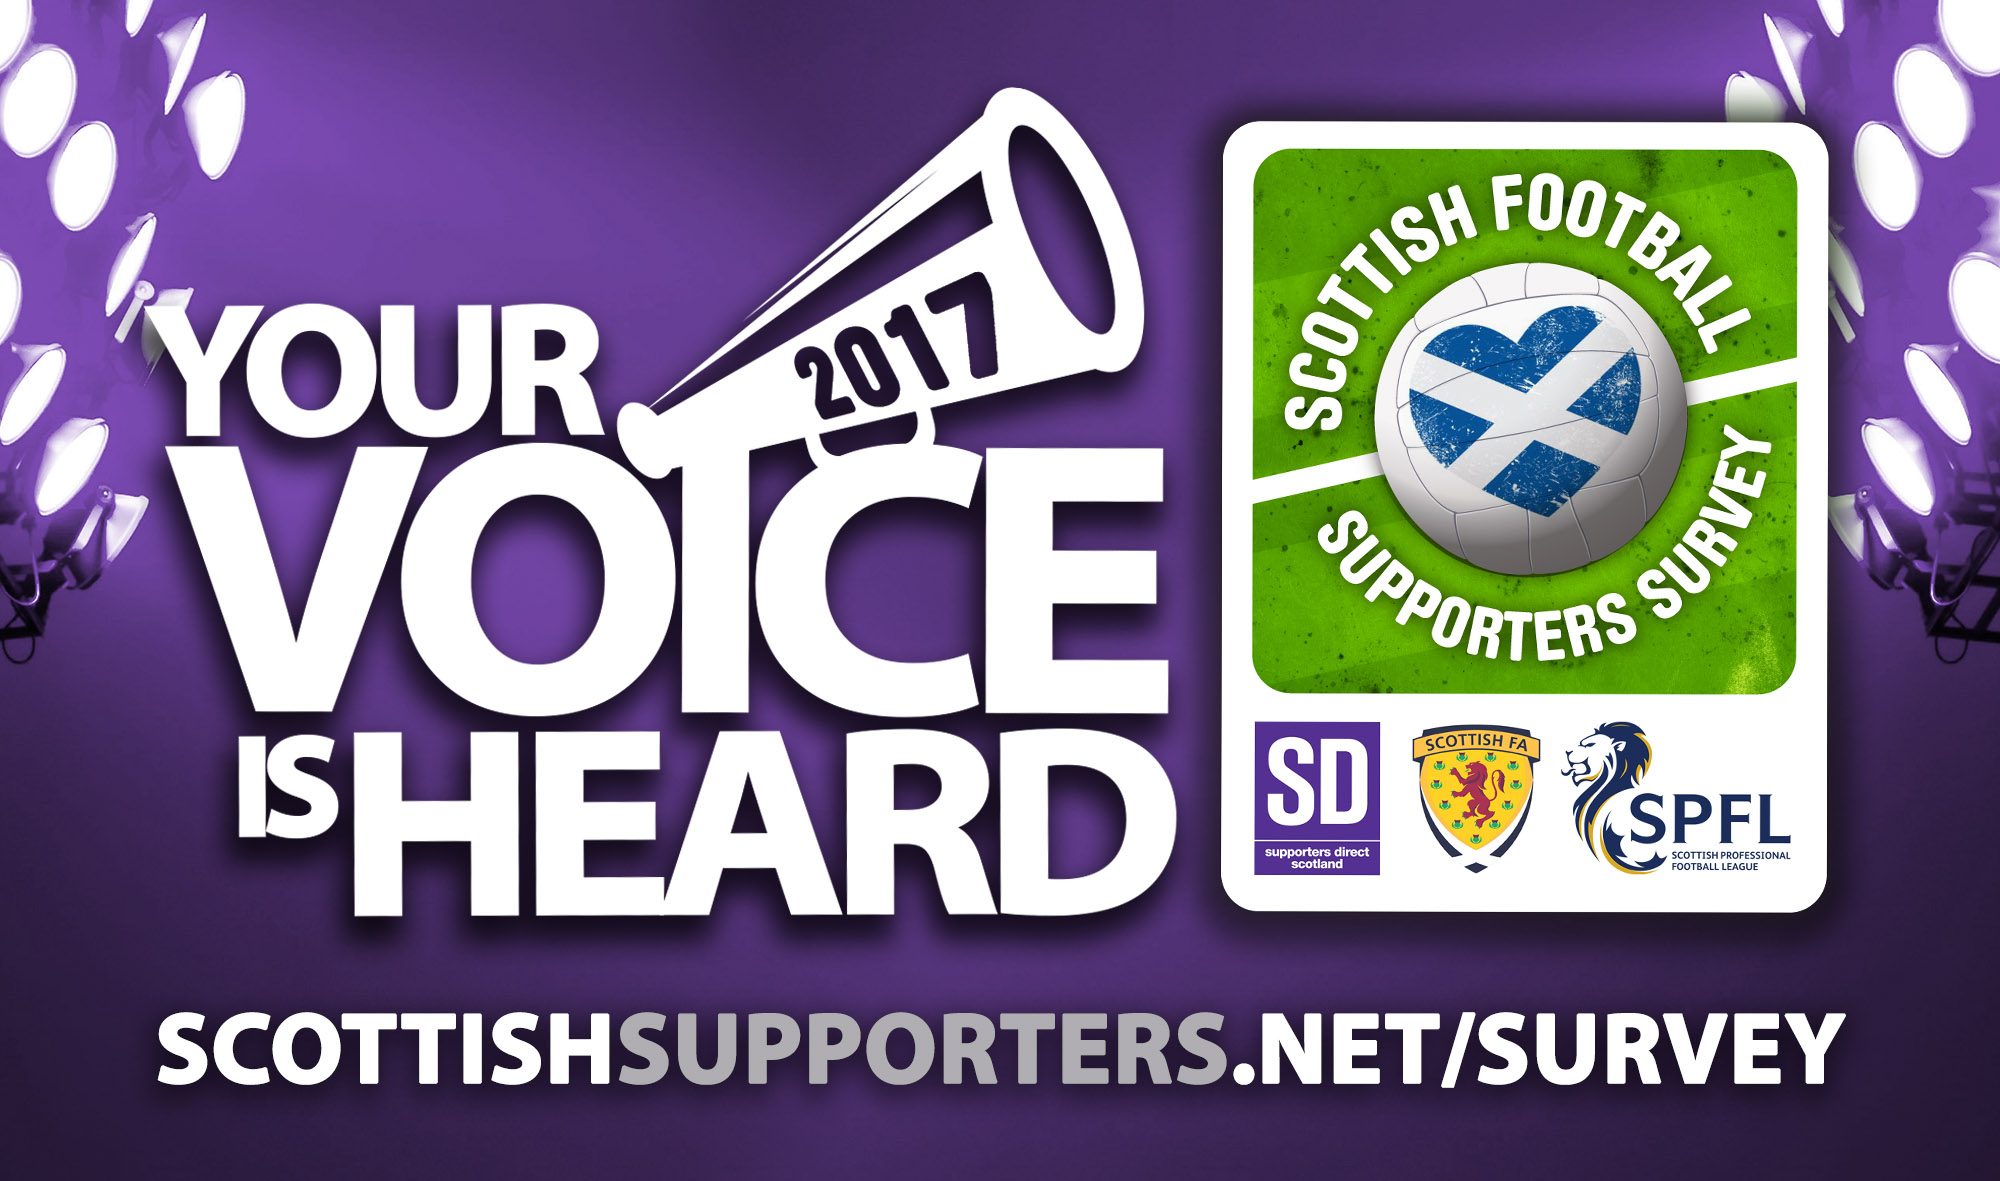 Complete the 2017 Scottish Football Supporters Survey